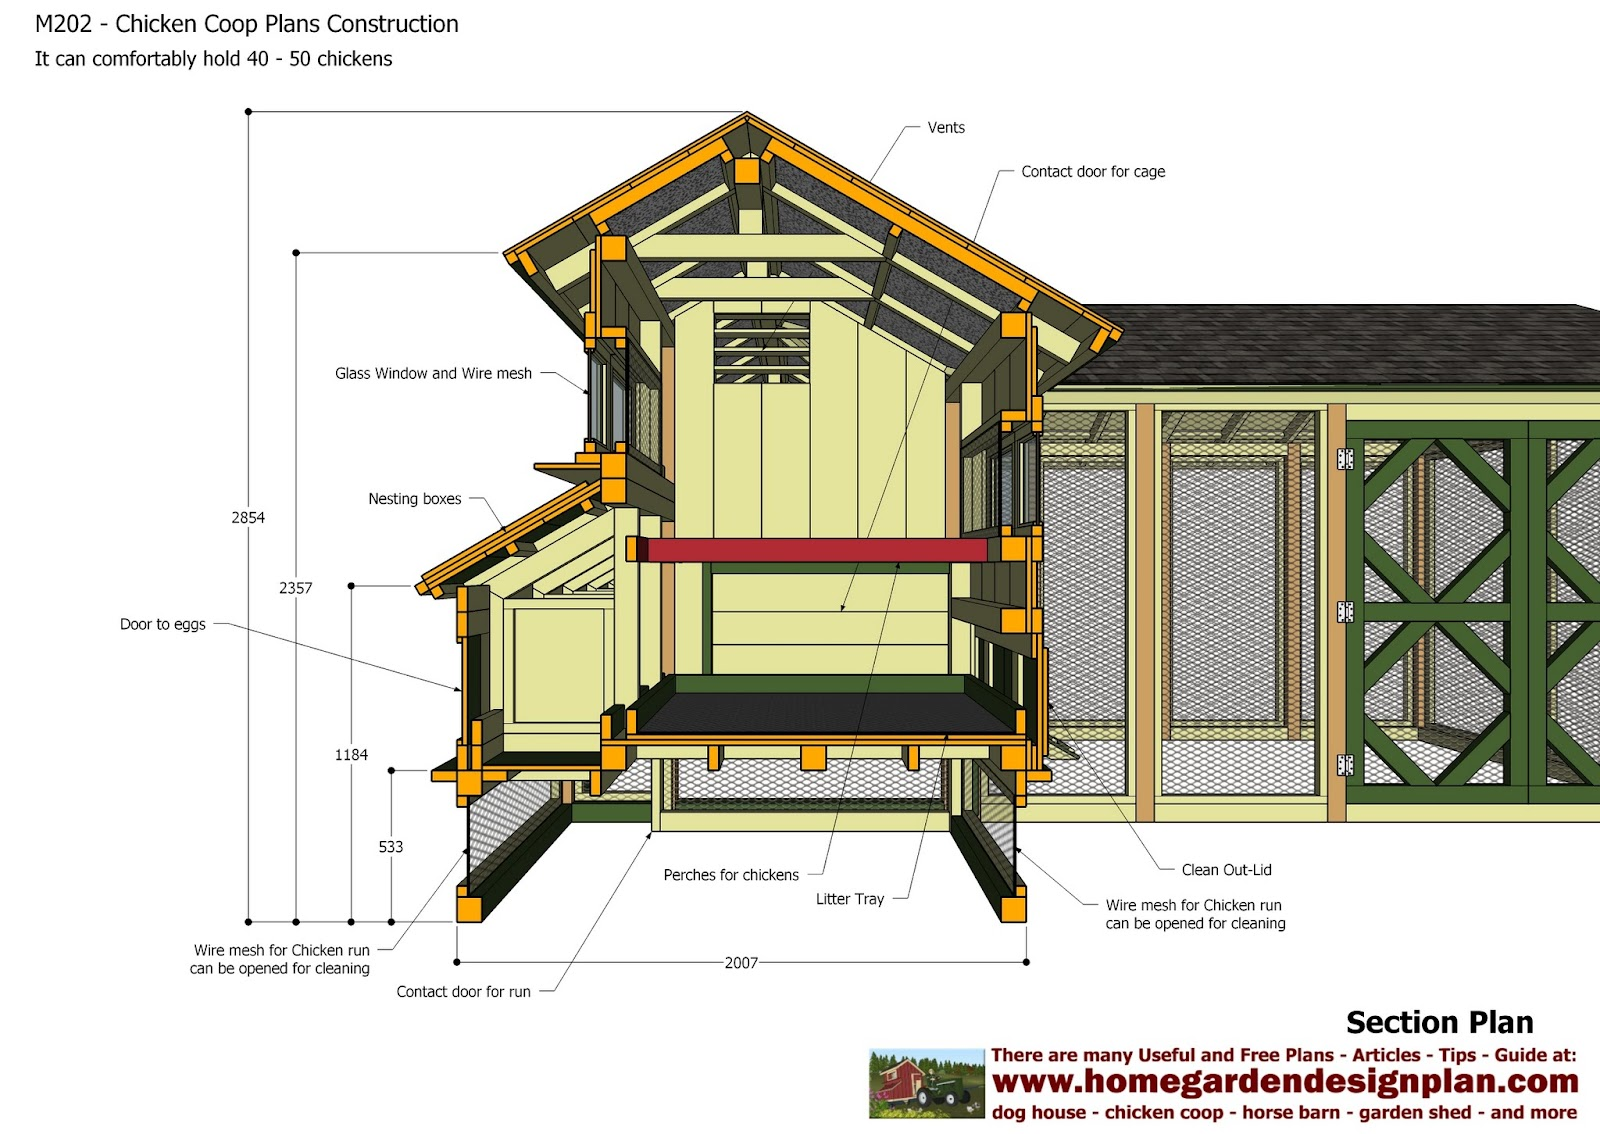 Home garden plans m202 chicken coop plans construction for Plans chicken coop